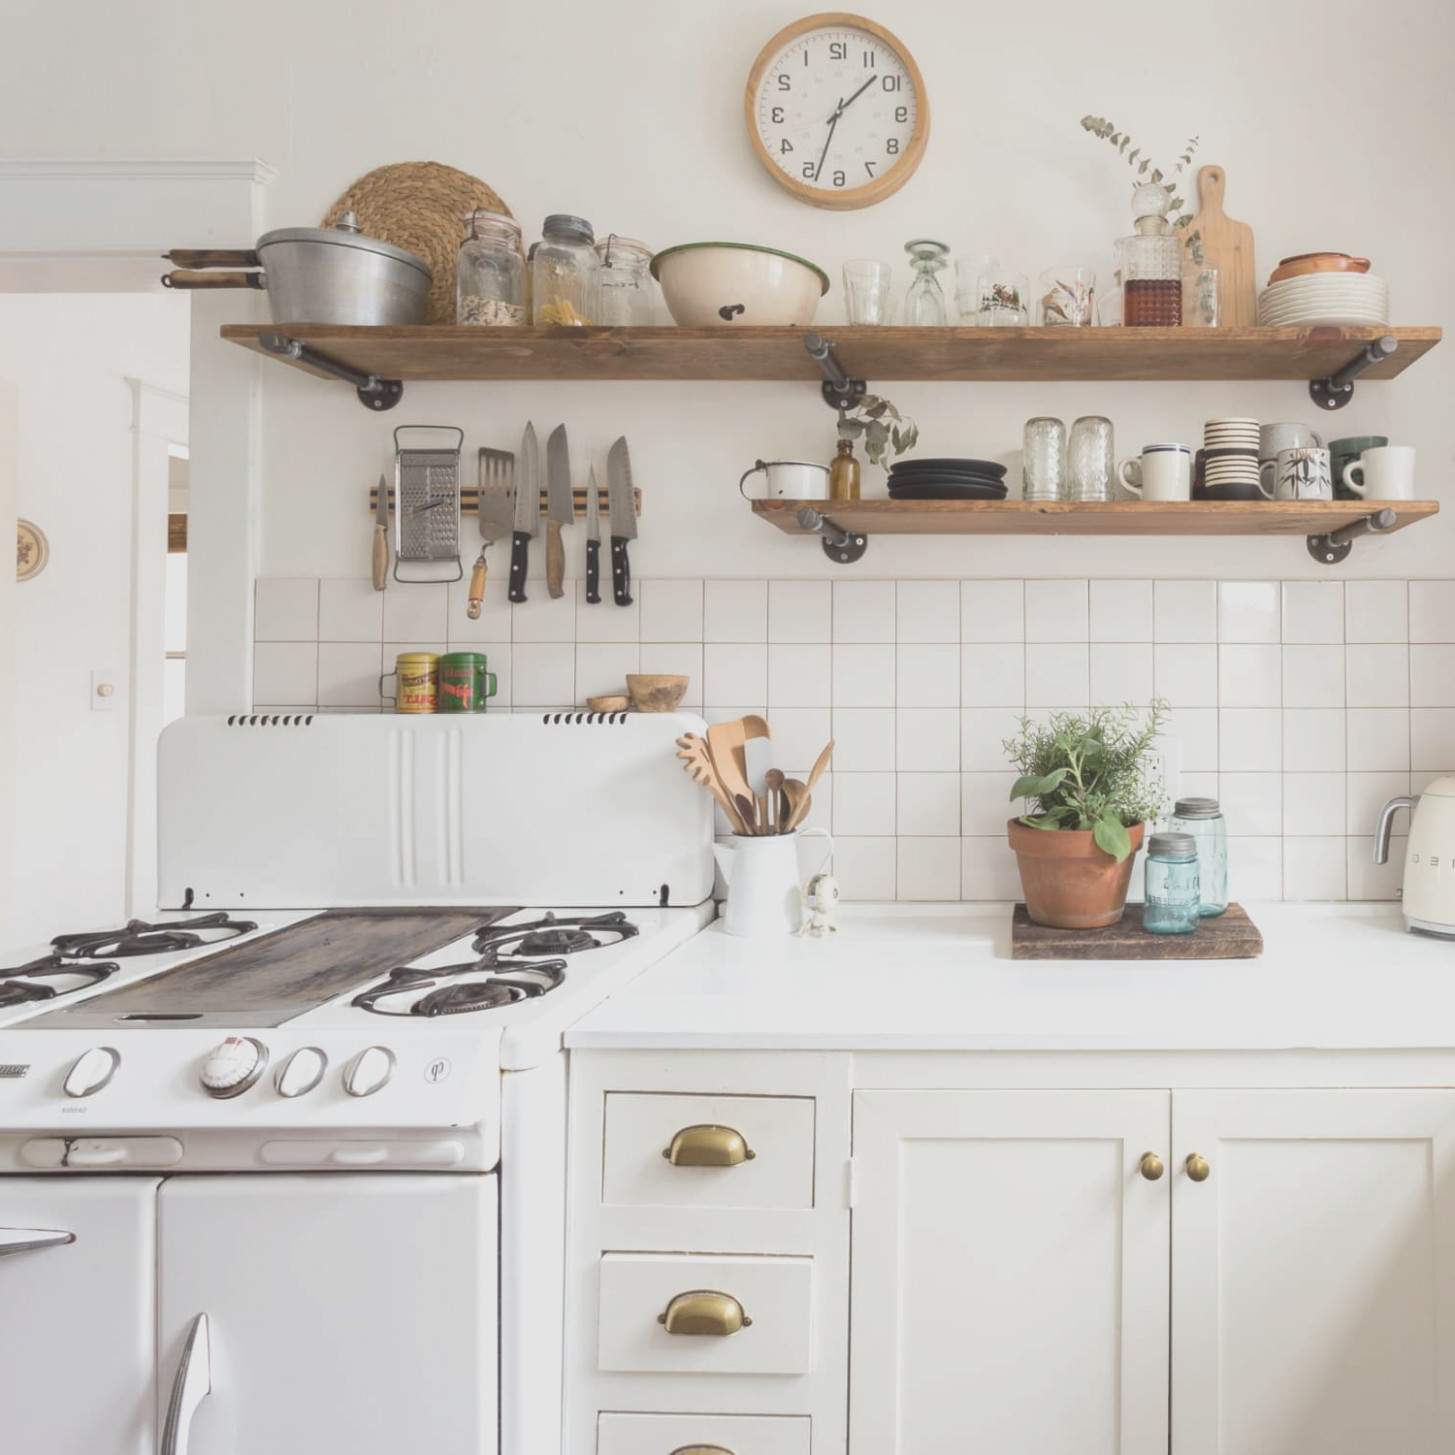 Cheapest Way to Do Kitchen Cabinets